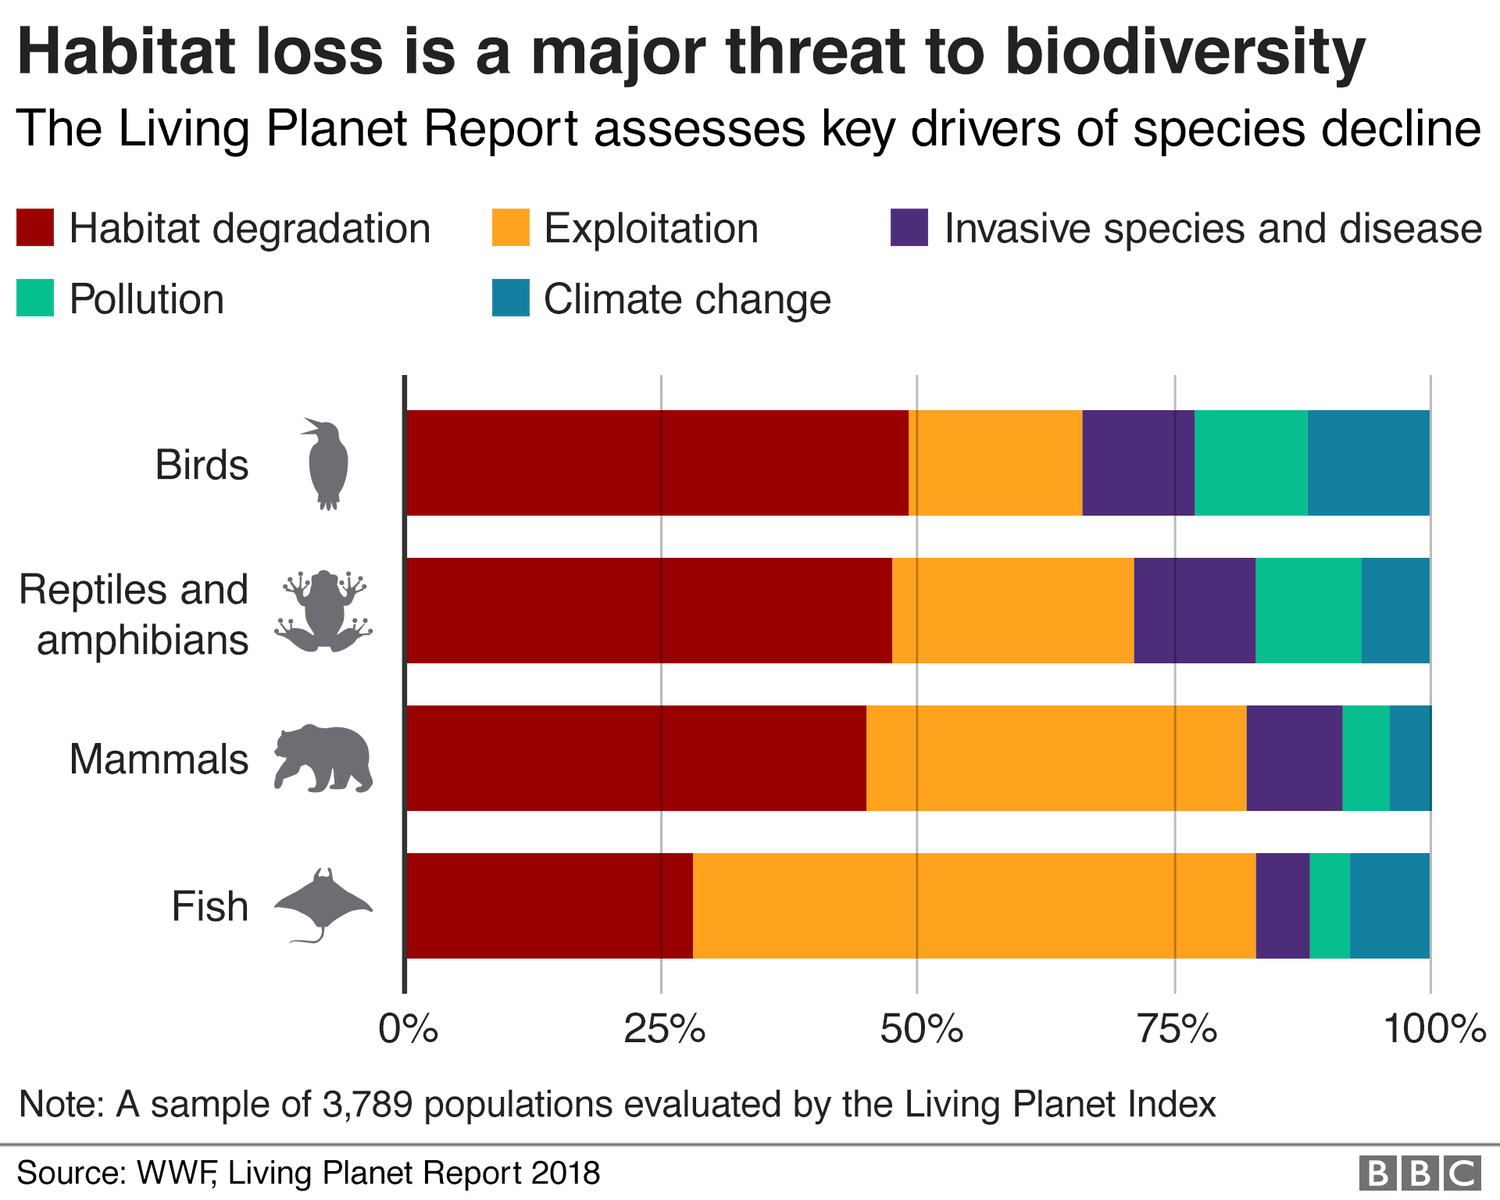 Nature's emergency: Where we are in five graphics - BBC News